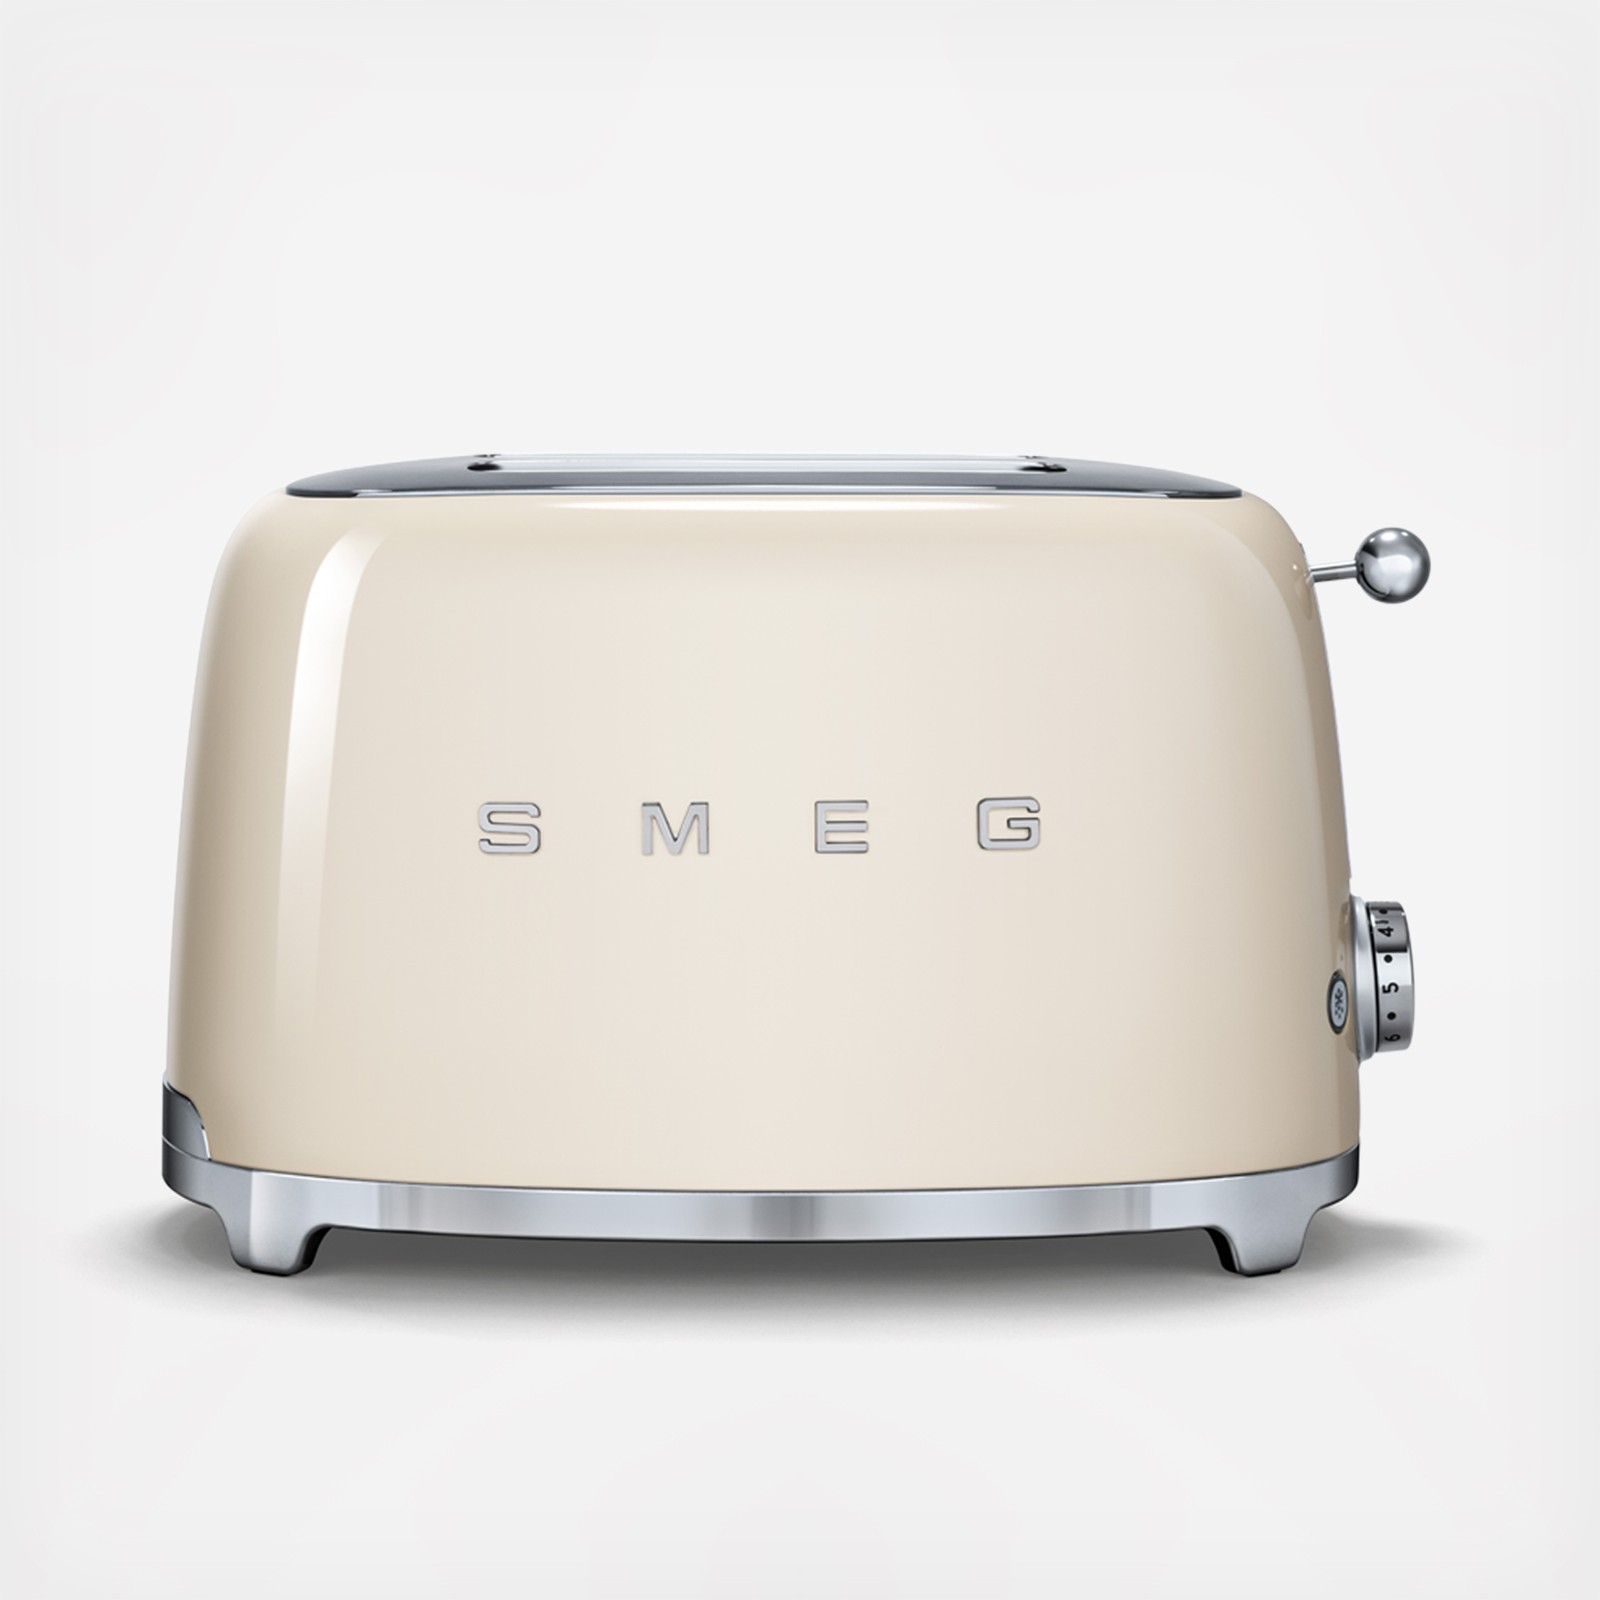 best extras stainless indybest steel lewis alessi dualit toaster independent house slot smeg garden john slice toasters the review under